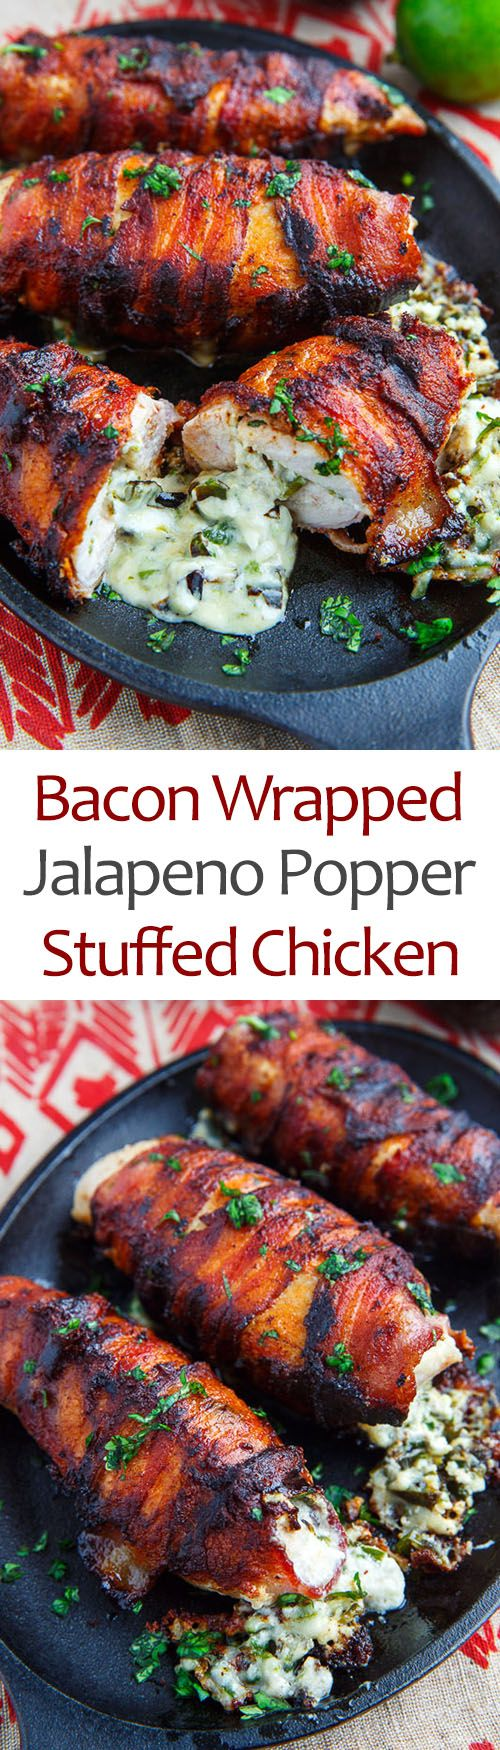 Bacon Wrapped Jalapeno Popper Stuffed Chicken - Closet Cooking